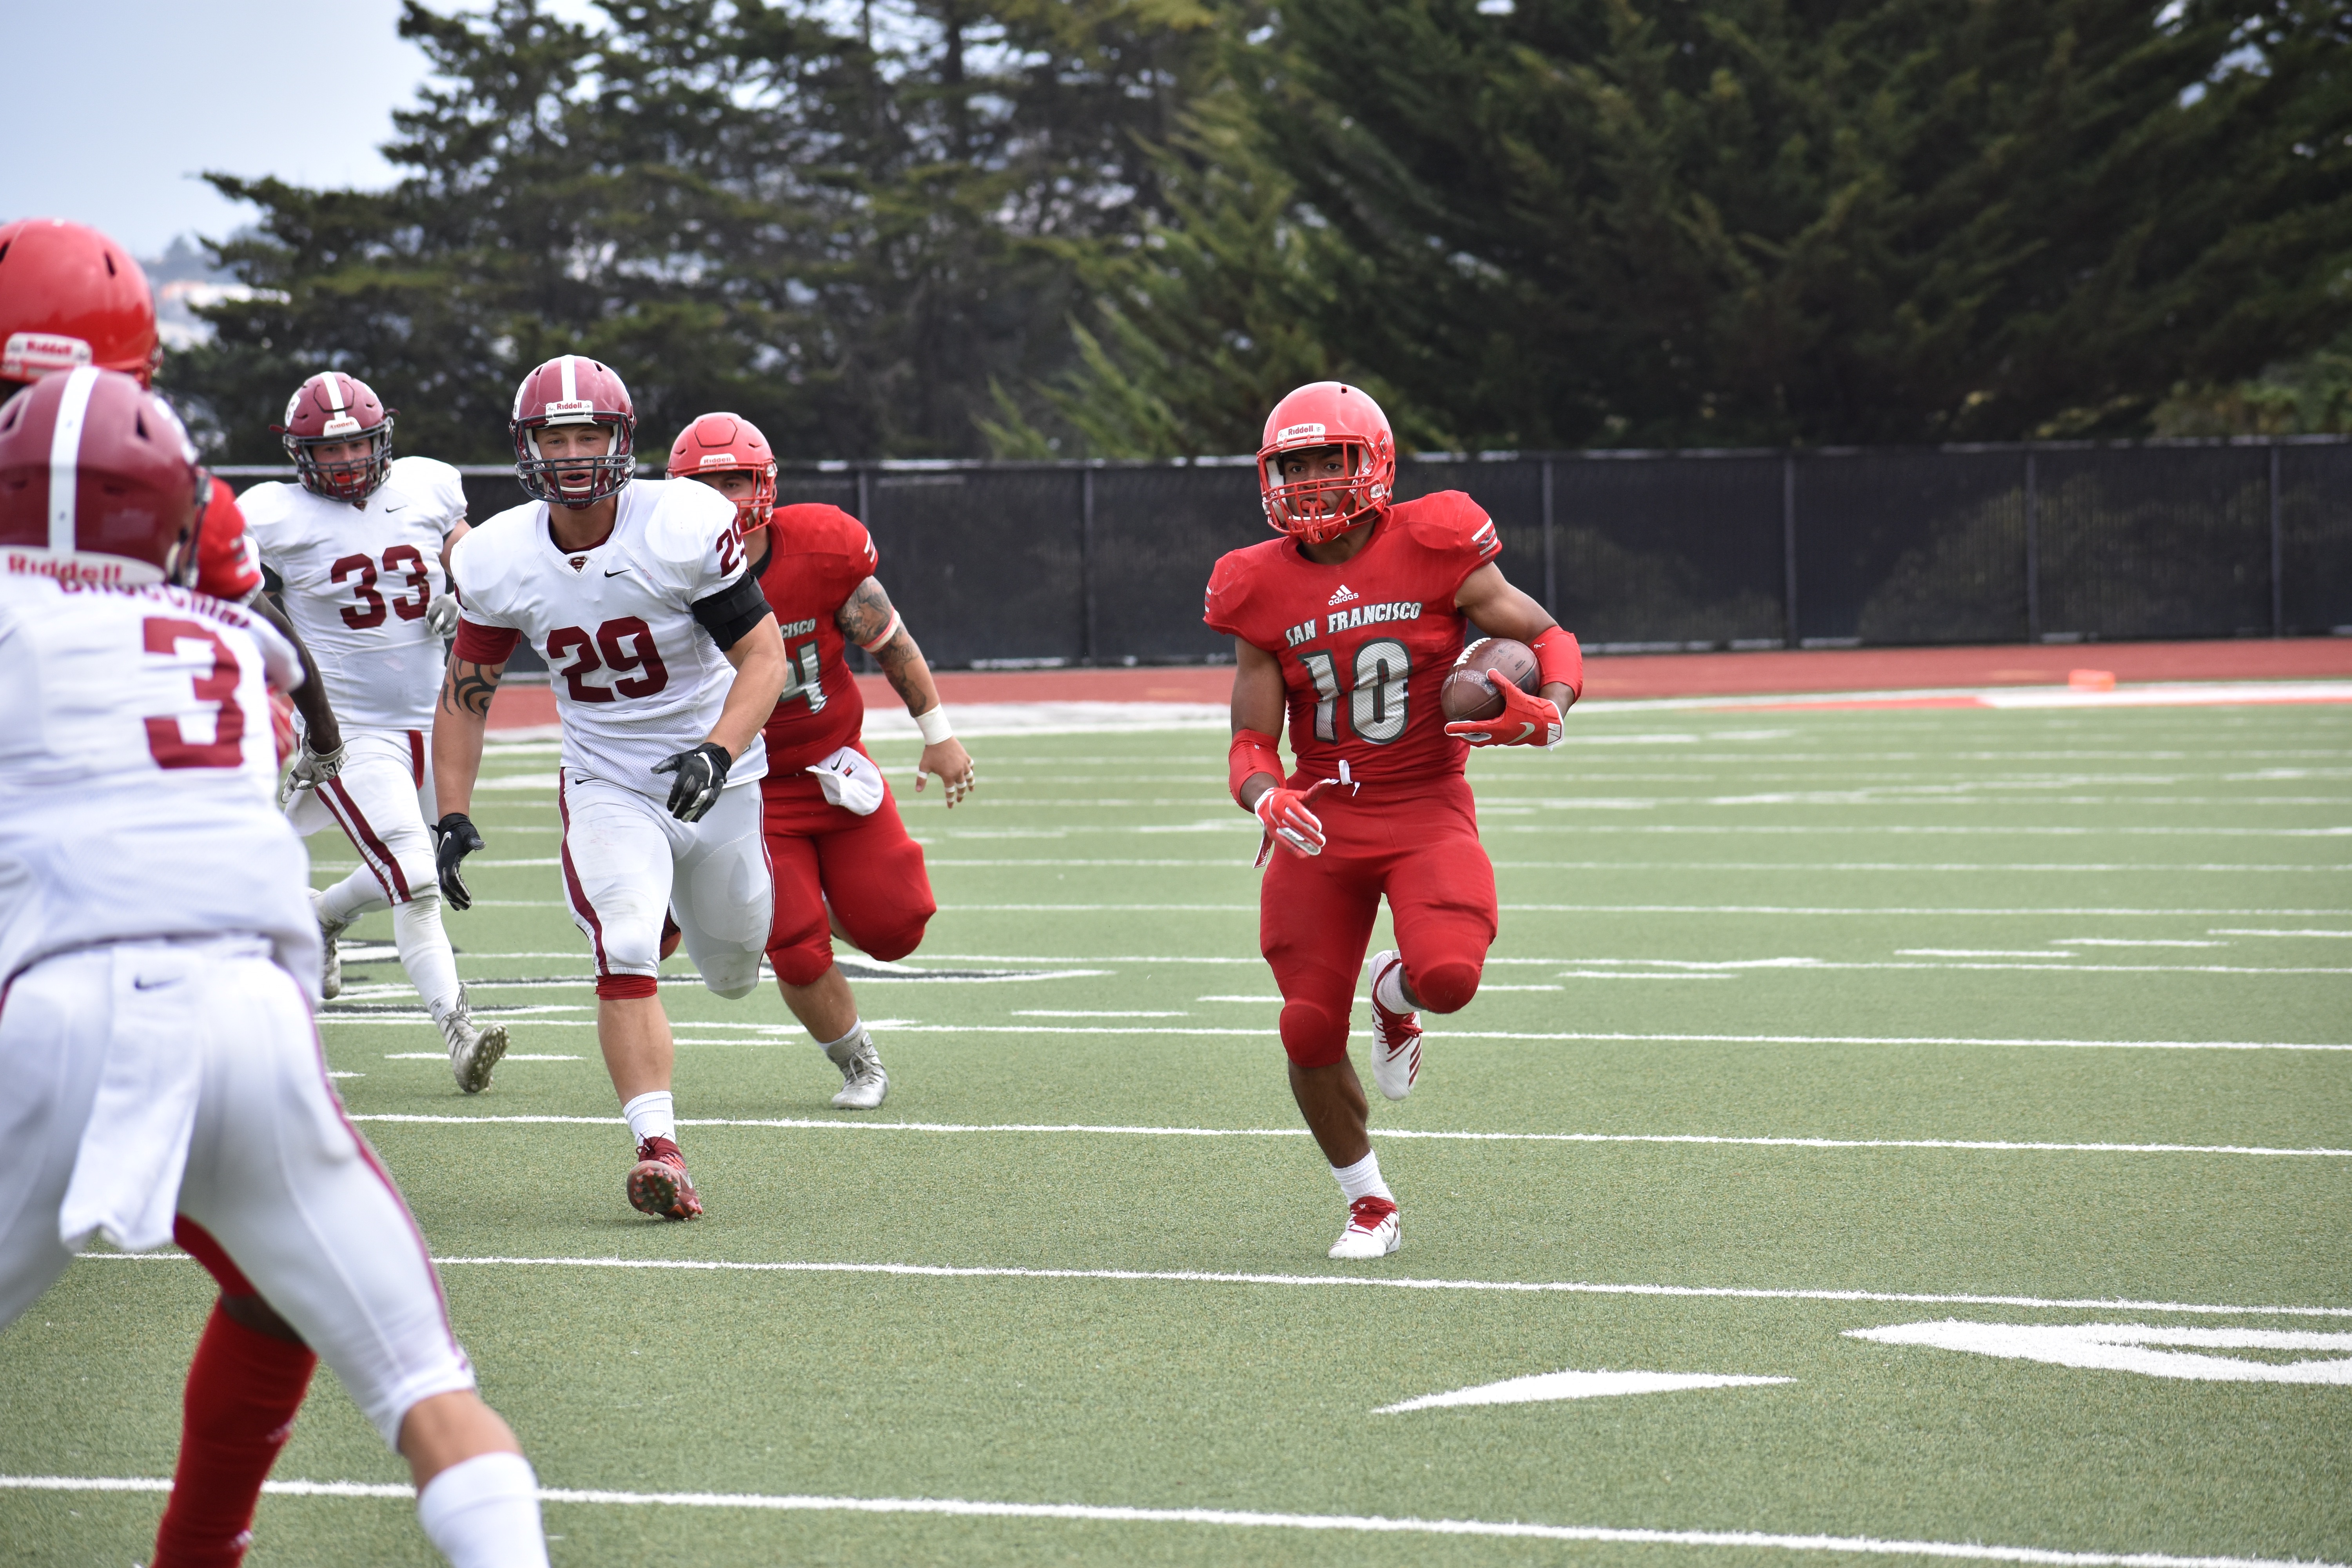 City College's DeShawn Collins (#10) rushed for a first down September 1, 2018 Photo by Veronica Steiner/ The Guardsman